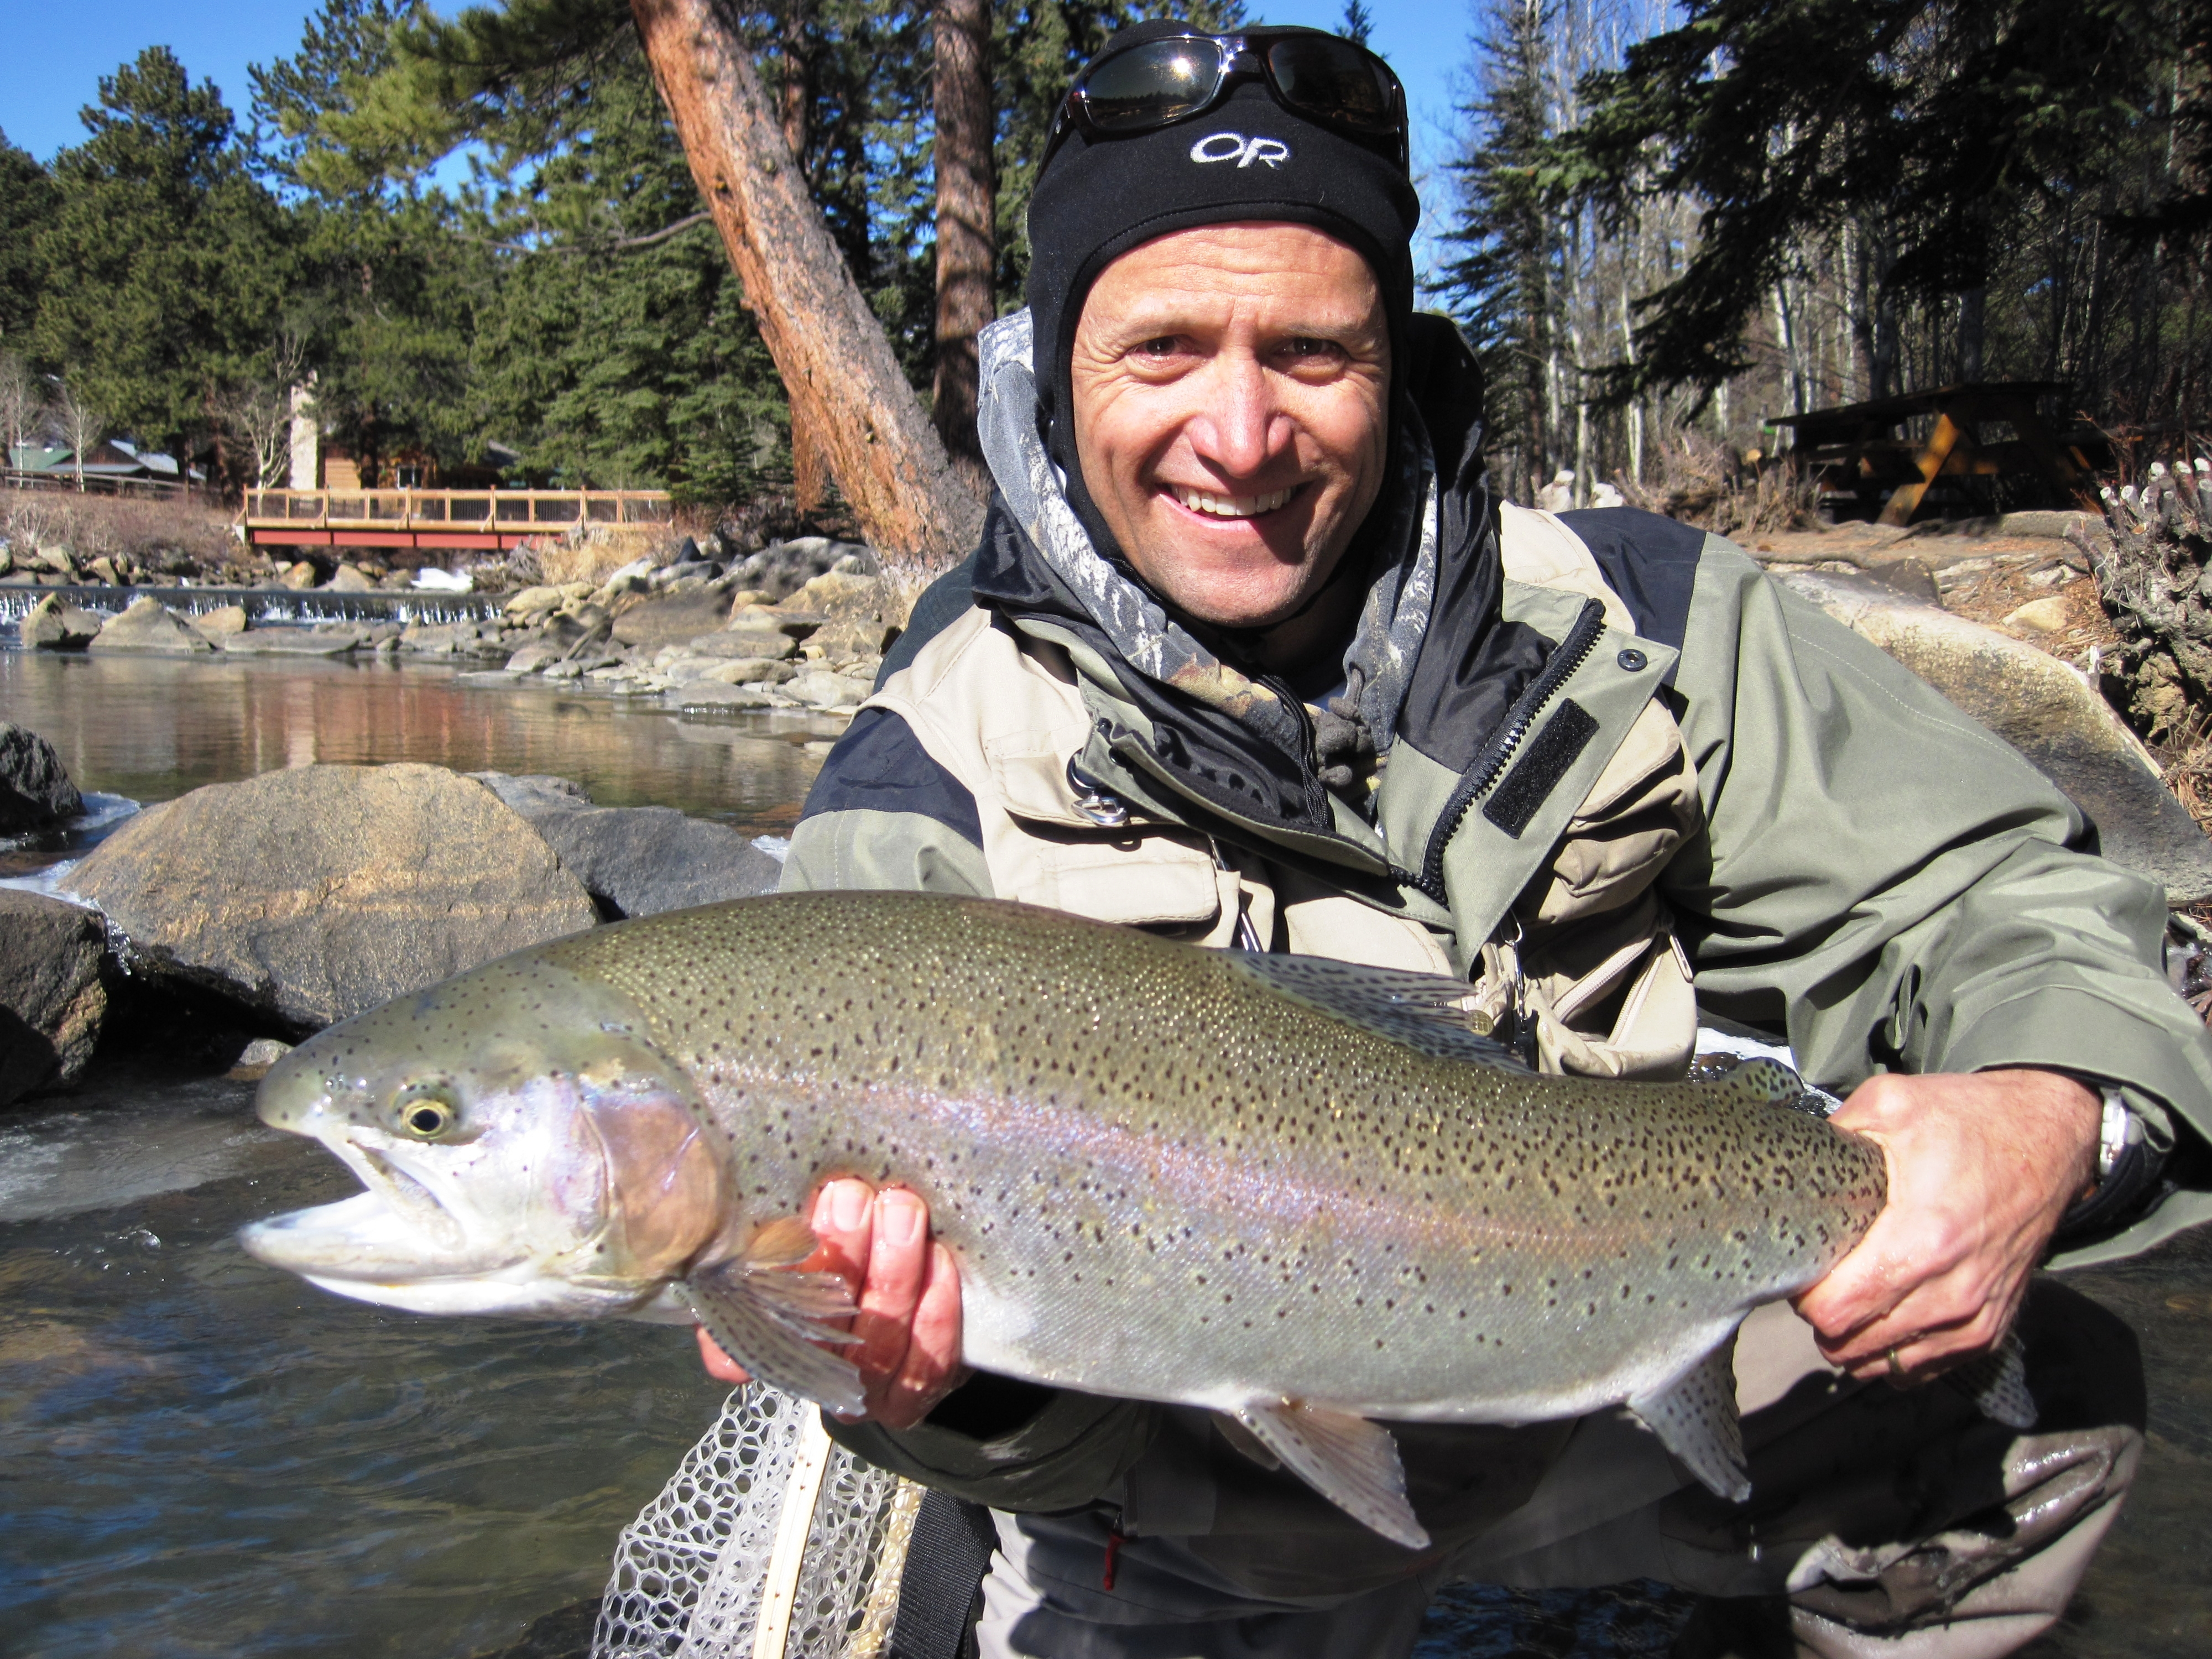 Colorado trout hunters fly fishing guides coupons near me for Where to go fishing near me